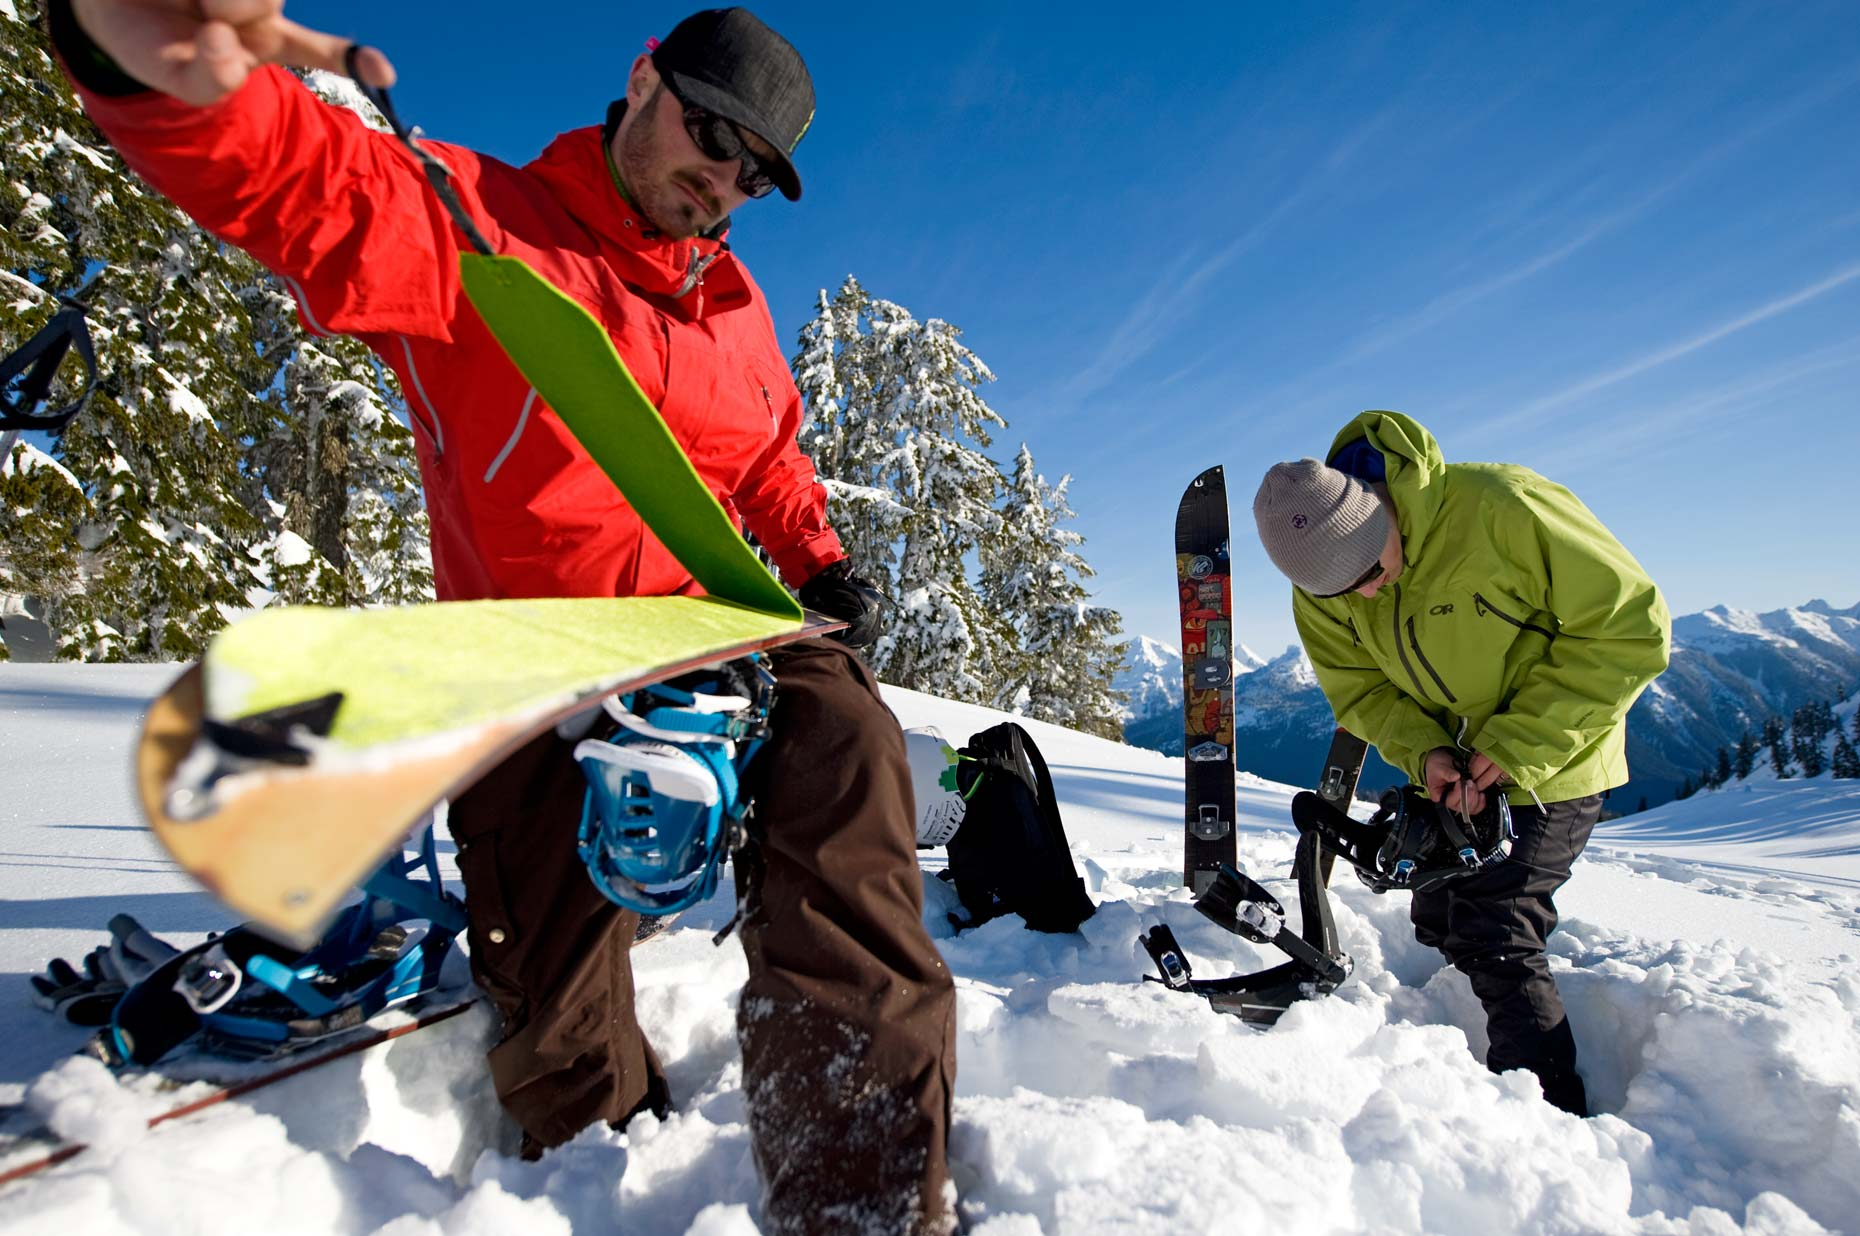 Ian-Coble-K2-Snowboards-Spli-Board-Skins-Backcountry